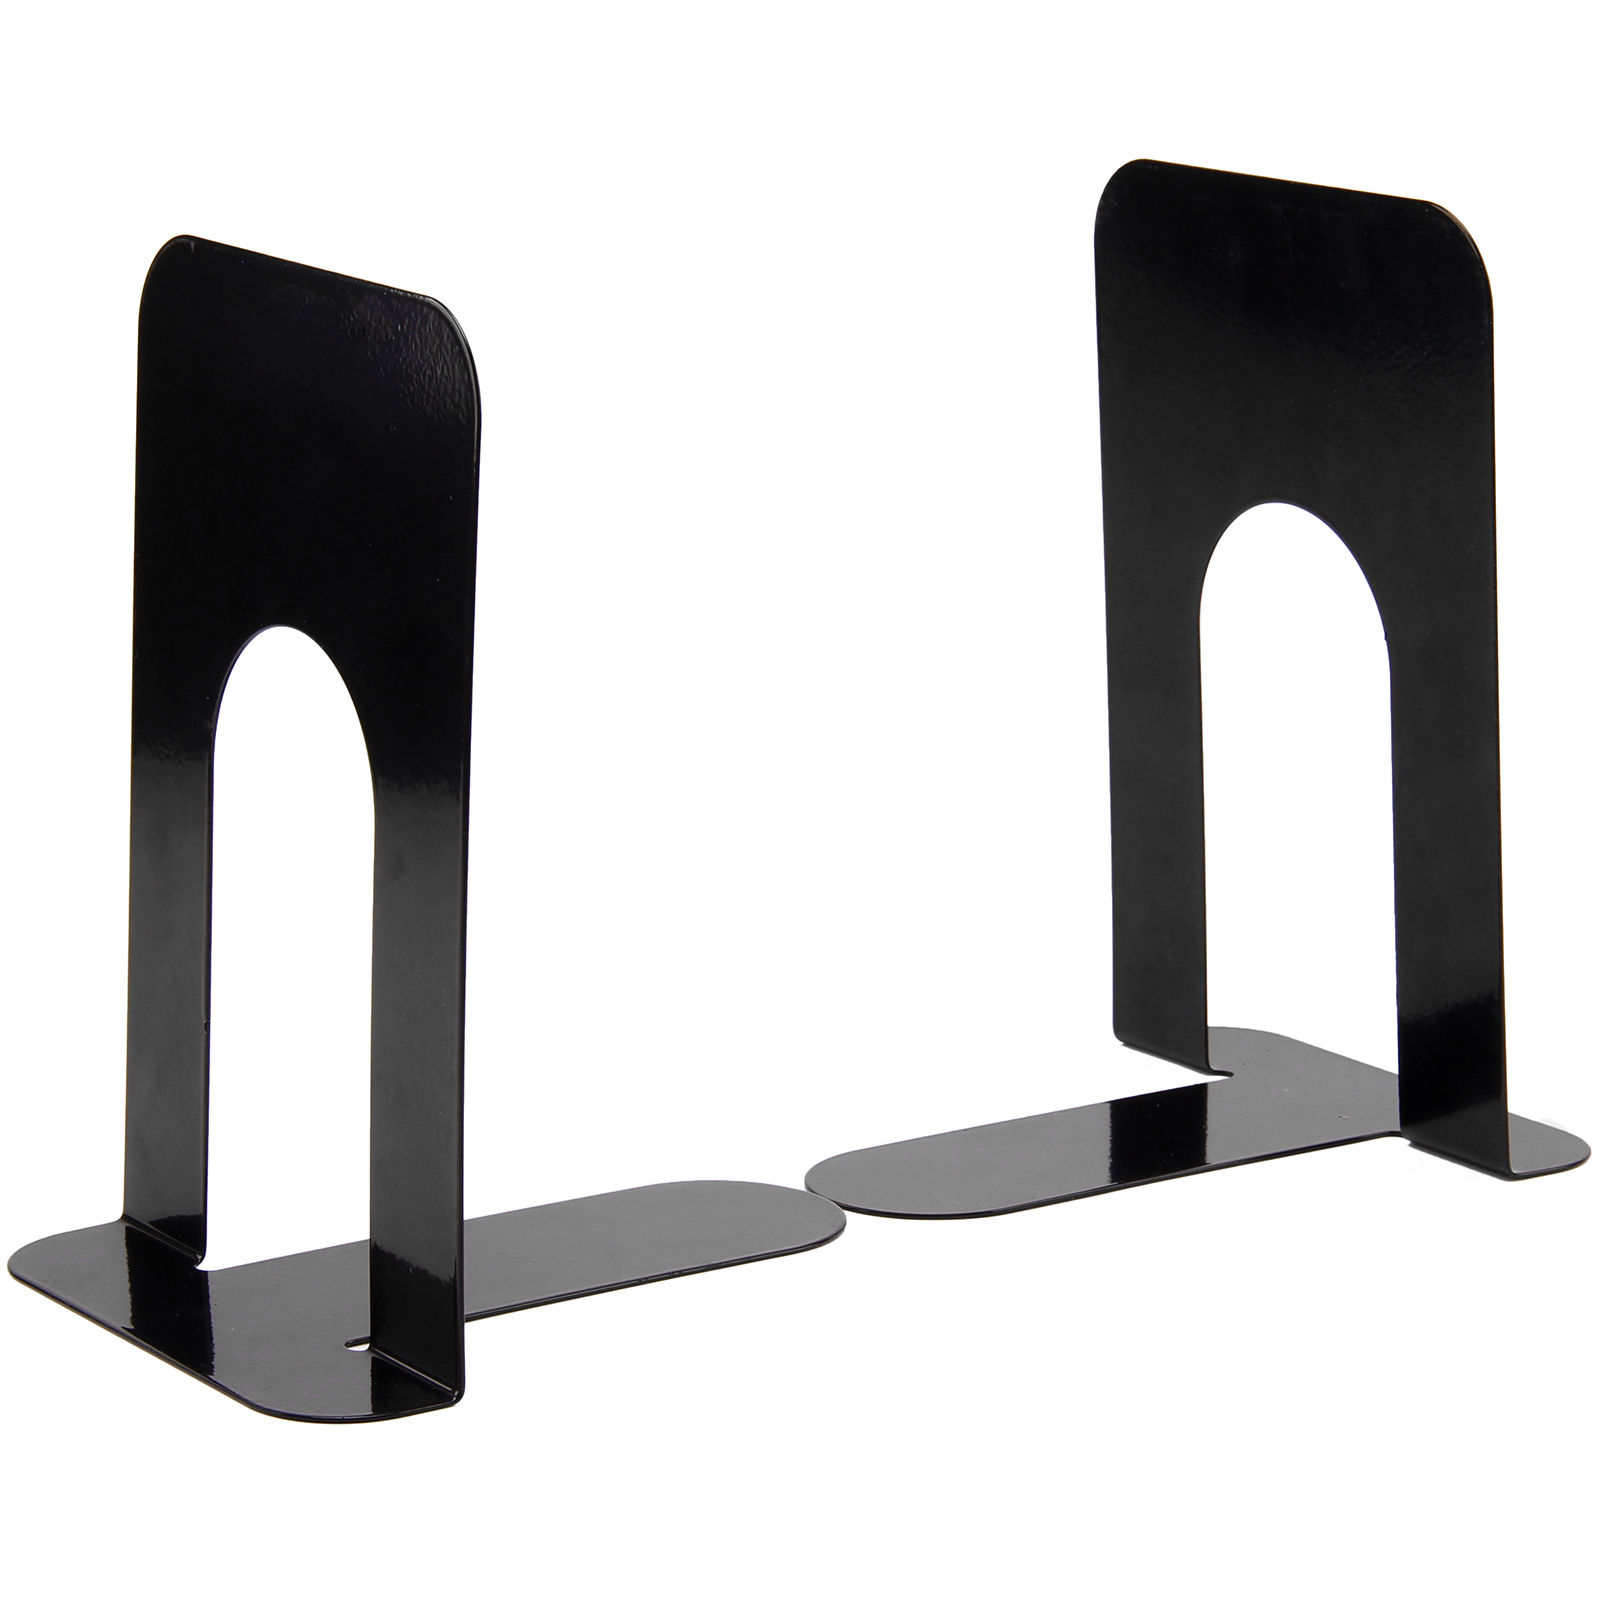 Heavy Duty Metal Bookends Book Ends Home & School Office Stationery - 4 Pairs 8 deli 0620 manual pencil sharpener heavy duty quiet for office home and school school chancery stationery desk clamp included